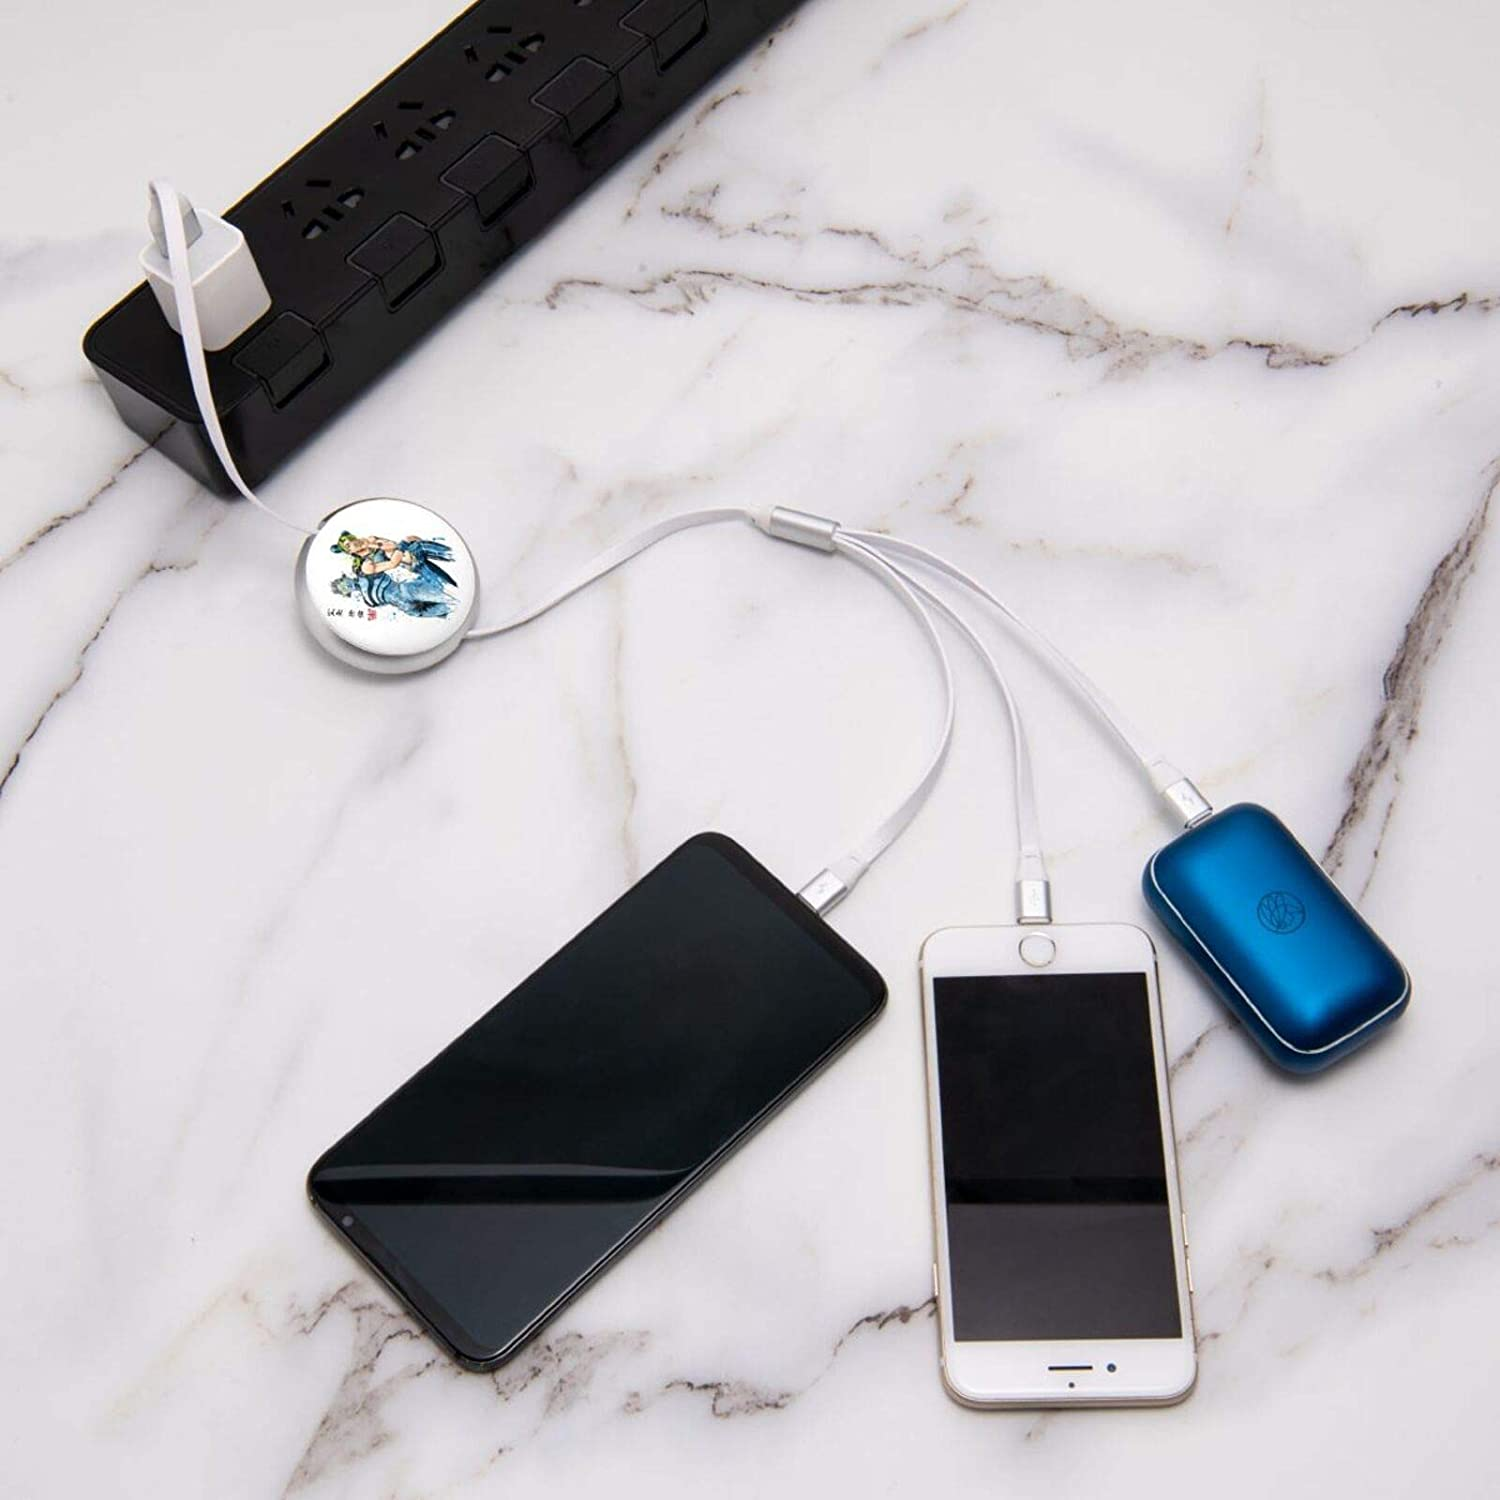 3 in 1 Retractable Multiple Charging Cable 3.0a Fast Charger Cord with Phone//Type C//Micro USB Charge Port Adapter Compatible with Cell Phones Tablets and More Be A Mulan